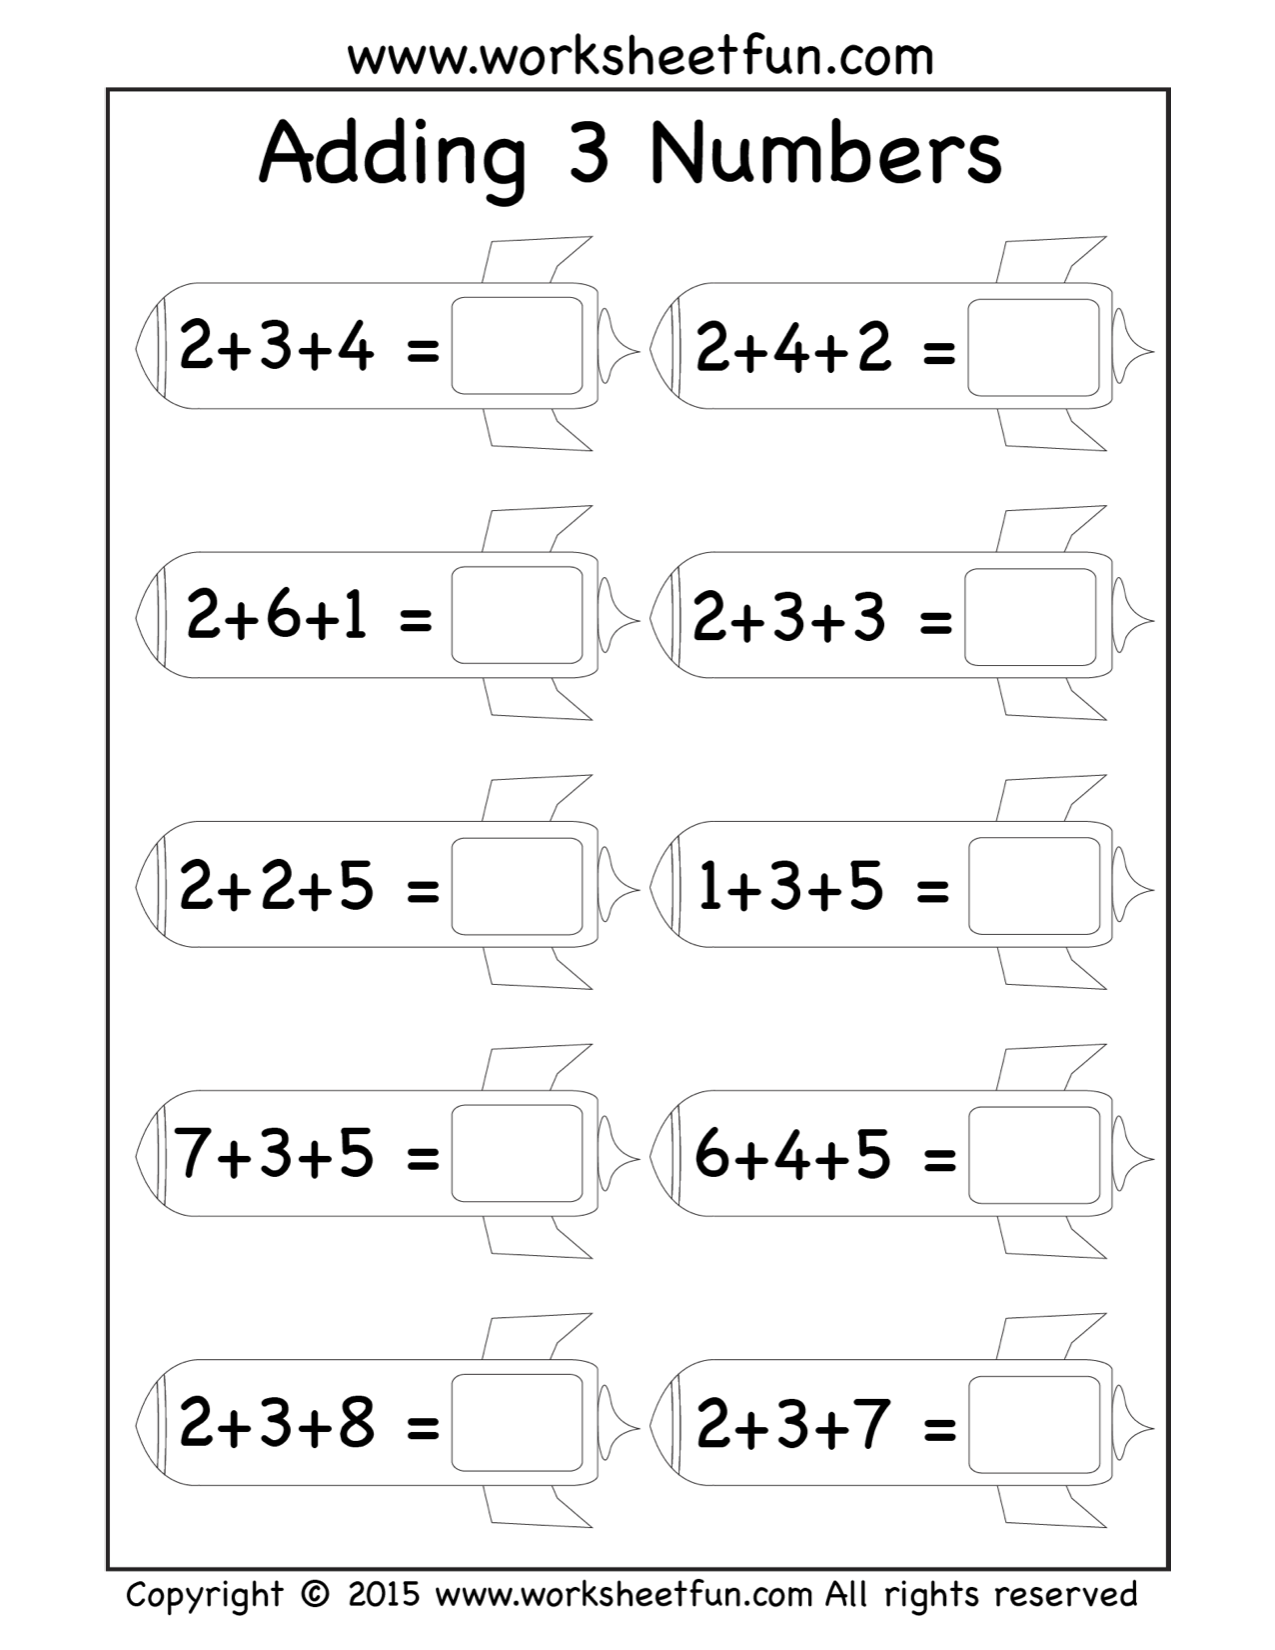 free three addend worksheets adding 3 numbers rockets first grade firsties first grade. Black Bedroom Furniture Sets. Home Design Ideas